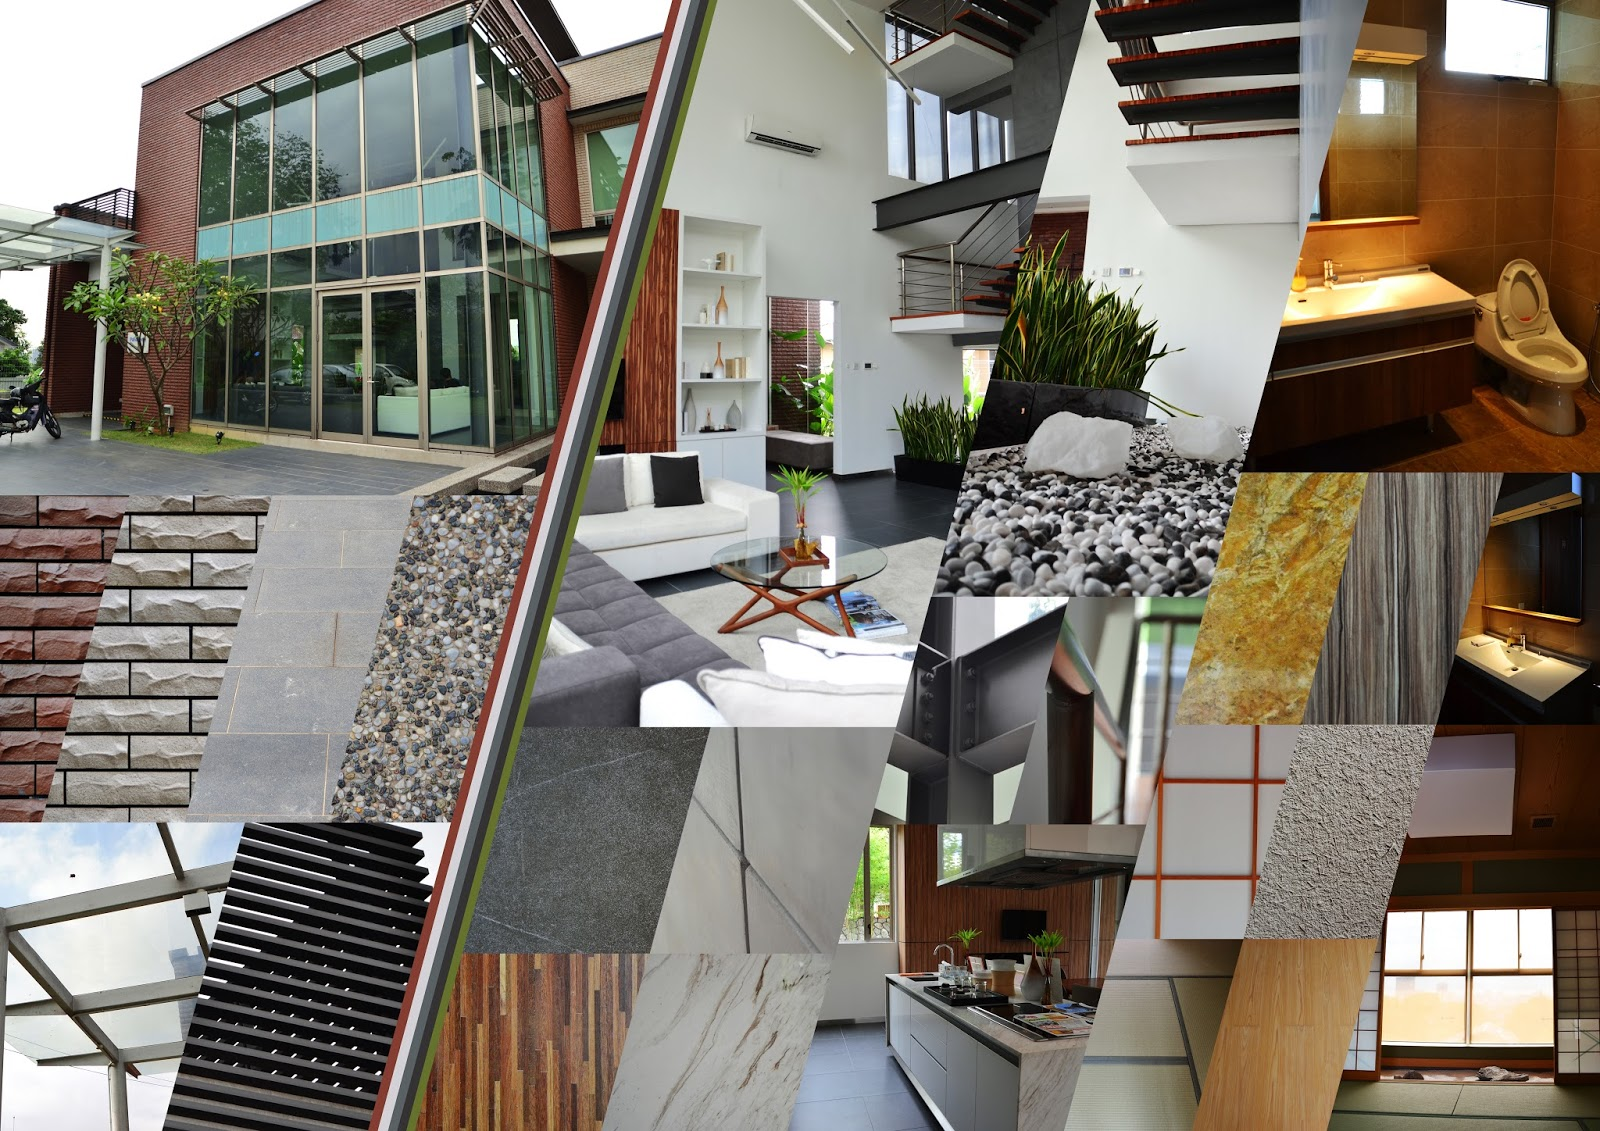 Project 2 materiality of space an experiential for I 10 building materials